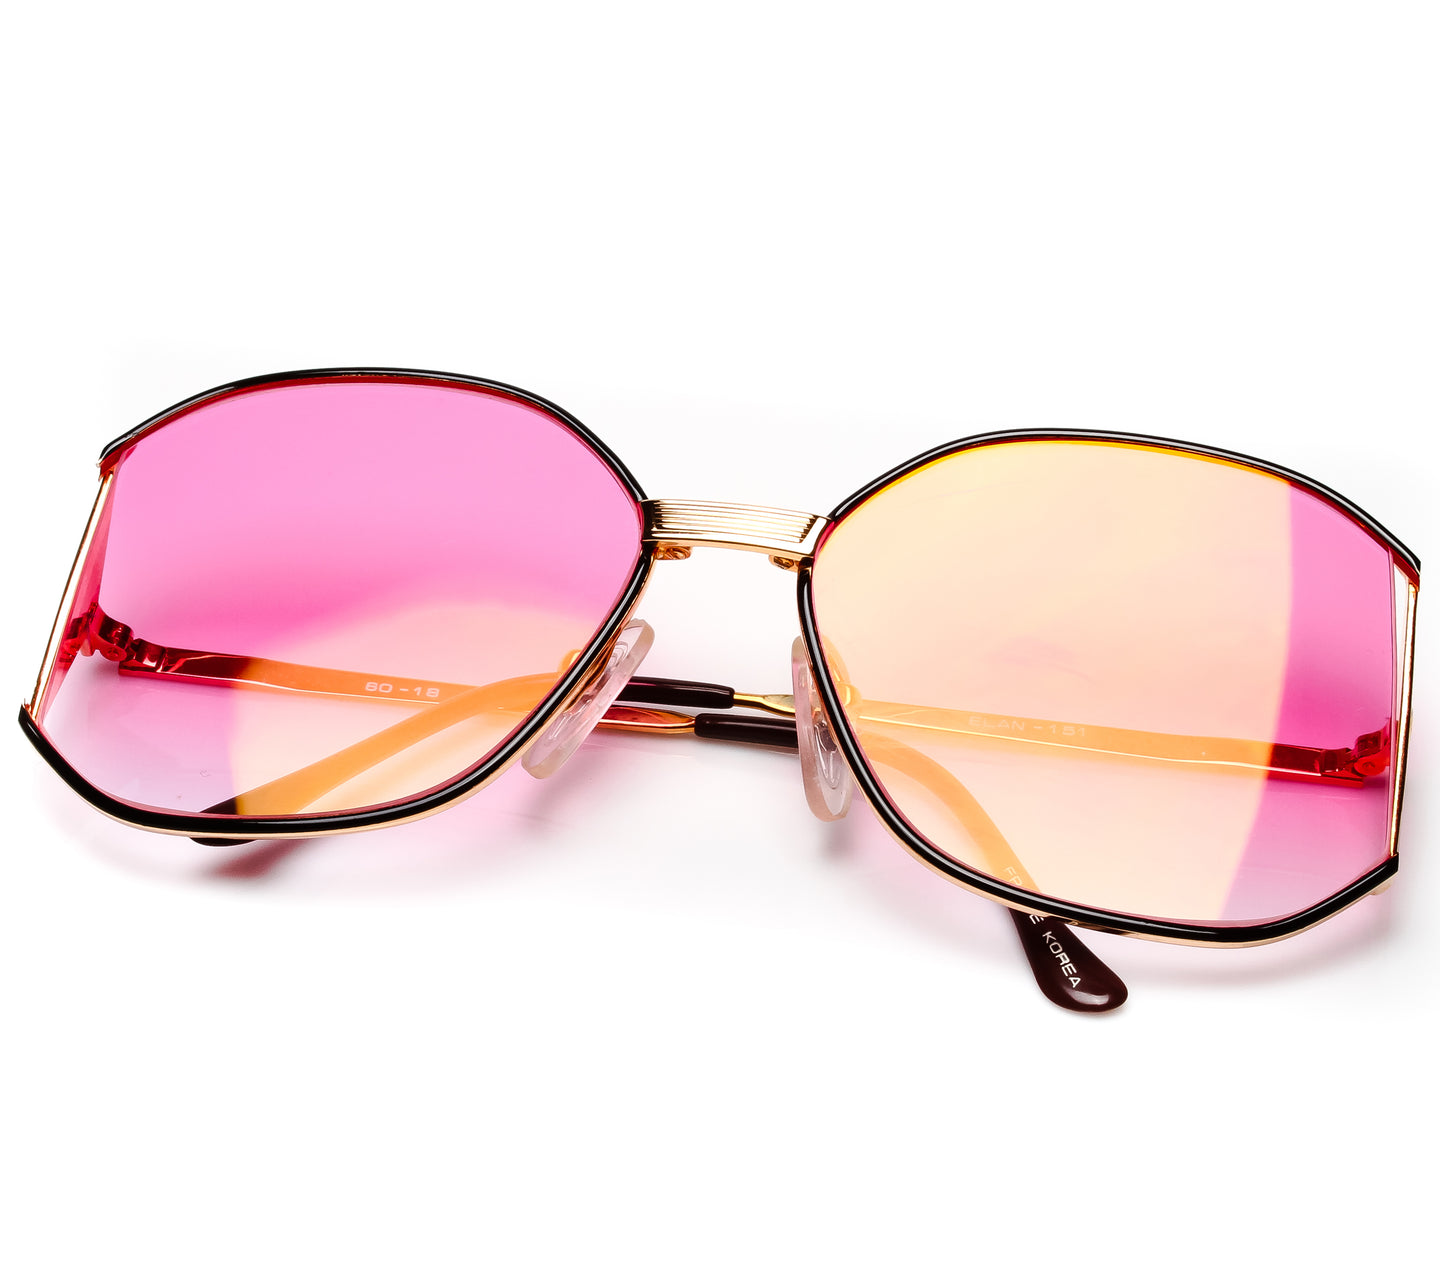 Bougie Bright Pink Gradient Thumbnail, VF by Vintage Frames , glasses frames, eyeglasses online, eyeglass frames, mens glasses, womens glasses, buy glasses online, designer eyeglasses, vintage sunglasses, retro sunglasses, vintage glasses, sunglass, eyeglass, glasses, lens, vintage frames company, vf